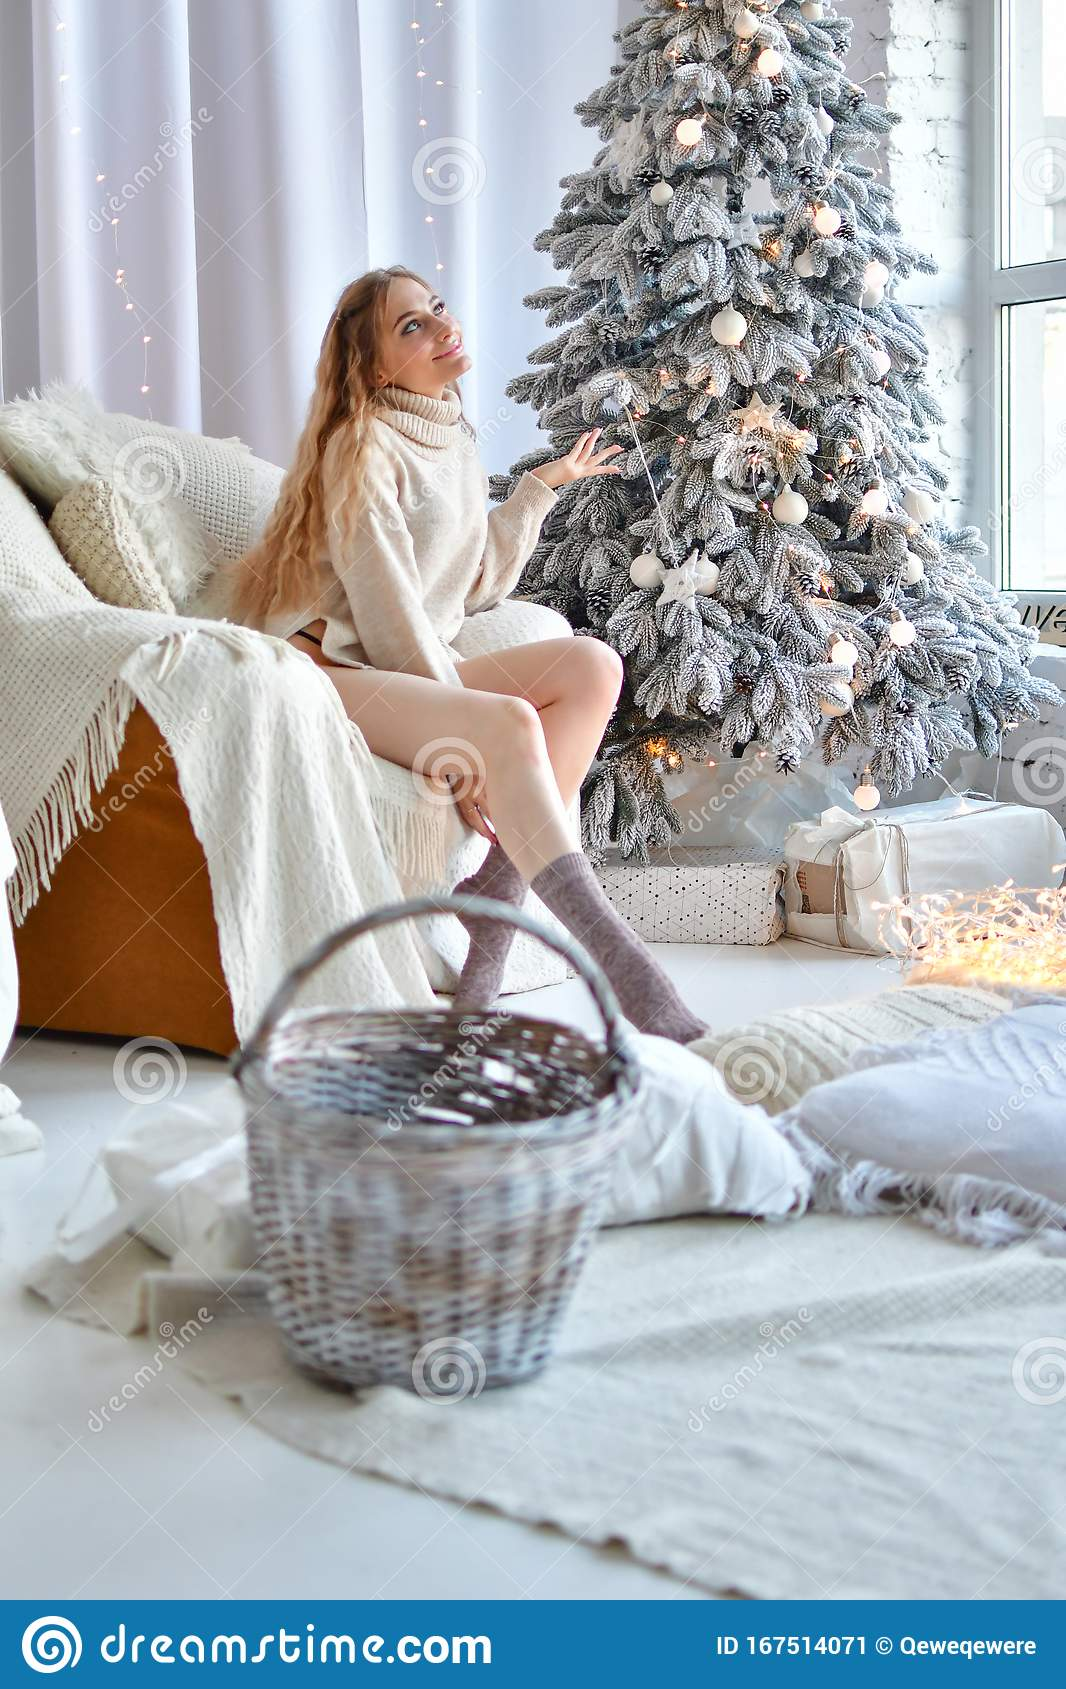 Merry christmas naked girl Happy Girl In Panties On Her Lap Sits On A Soft Chair Next Christmas Tree And Window Stock Image Image Of Interior Merry 167514071